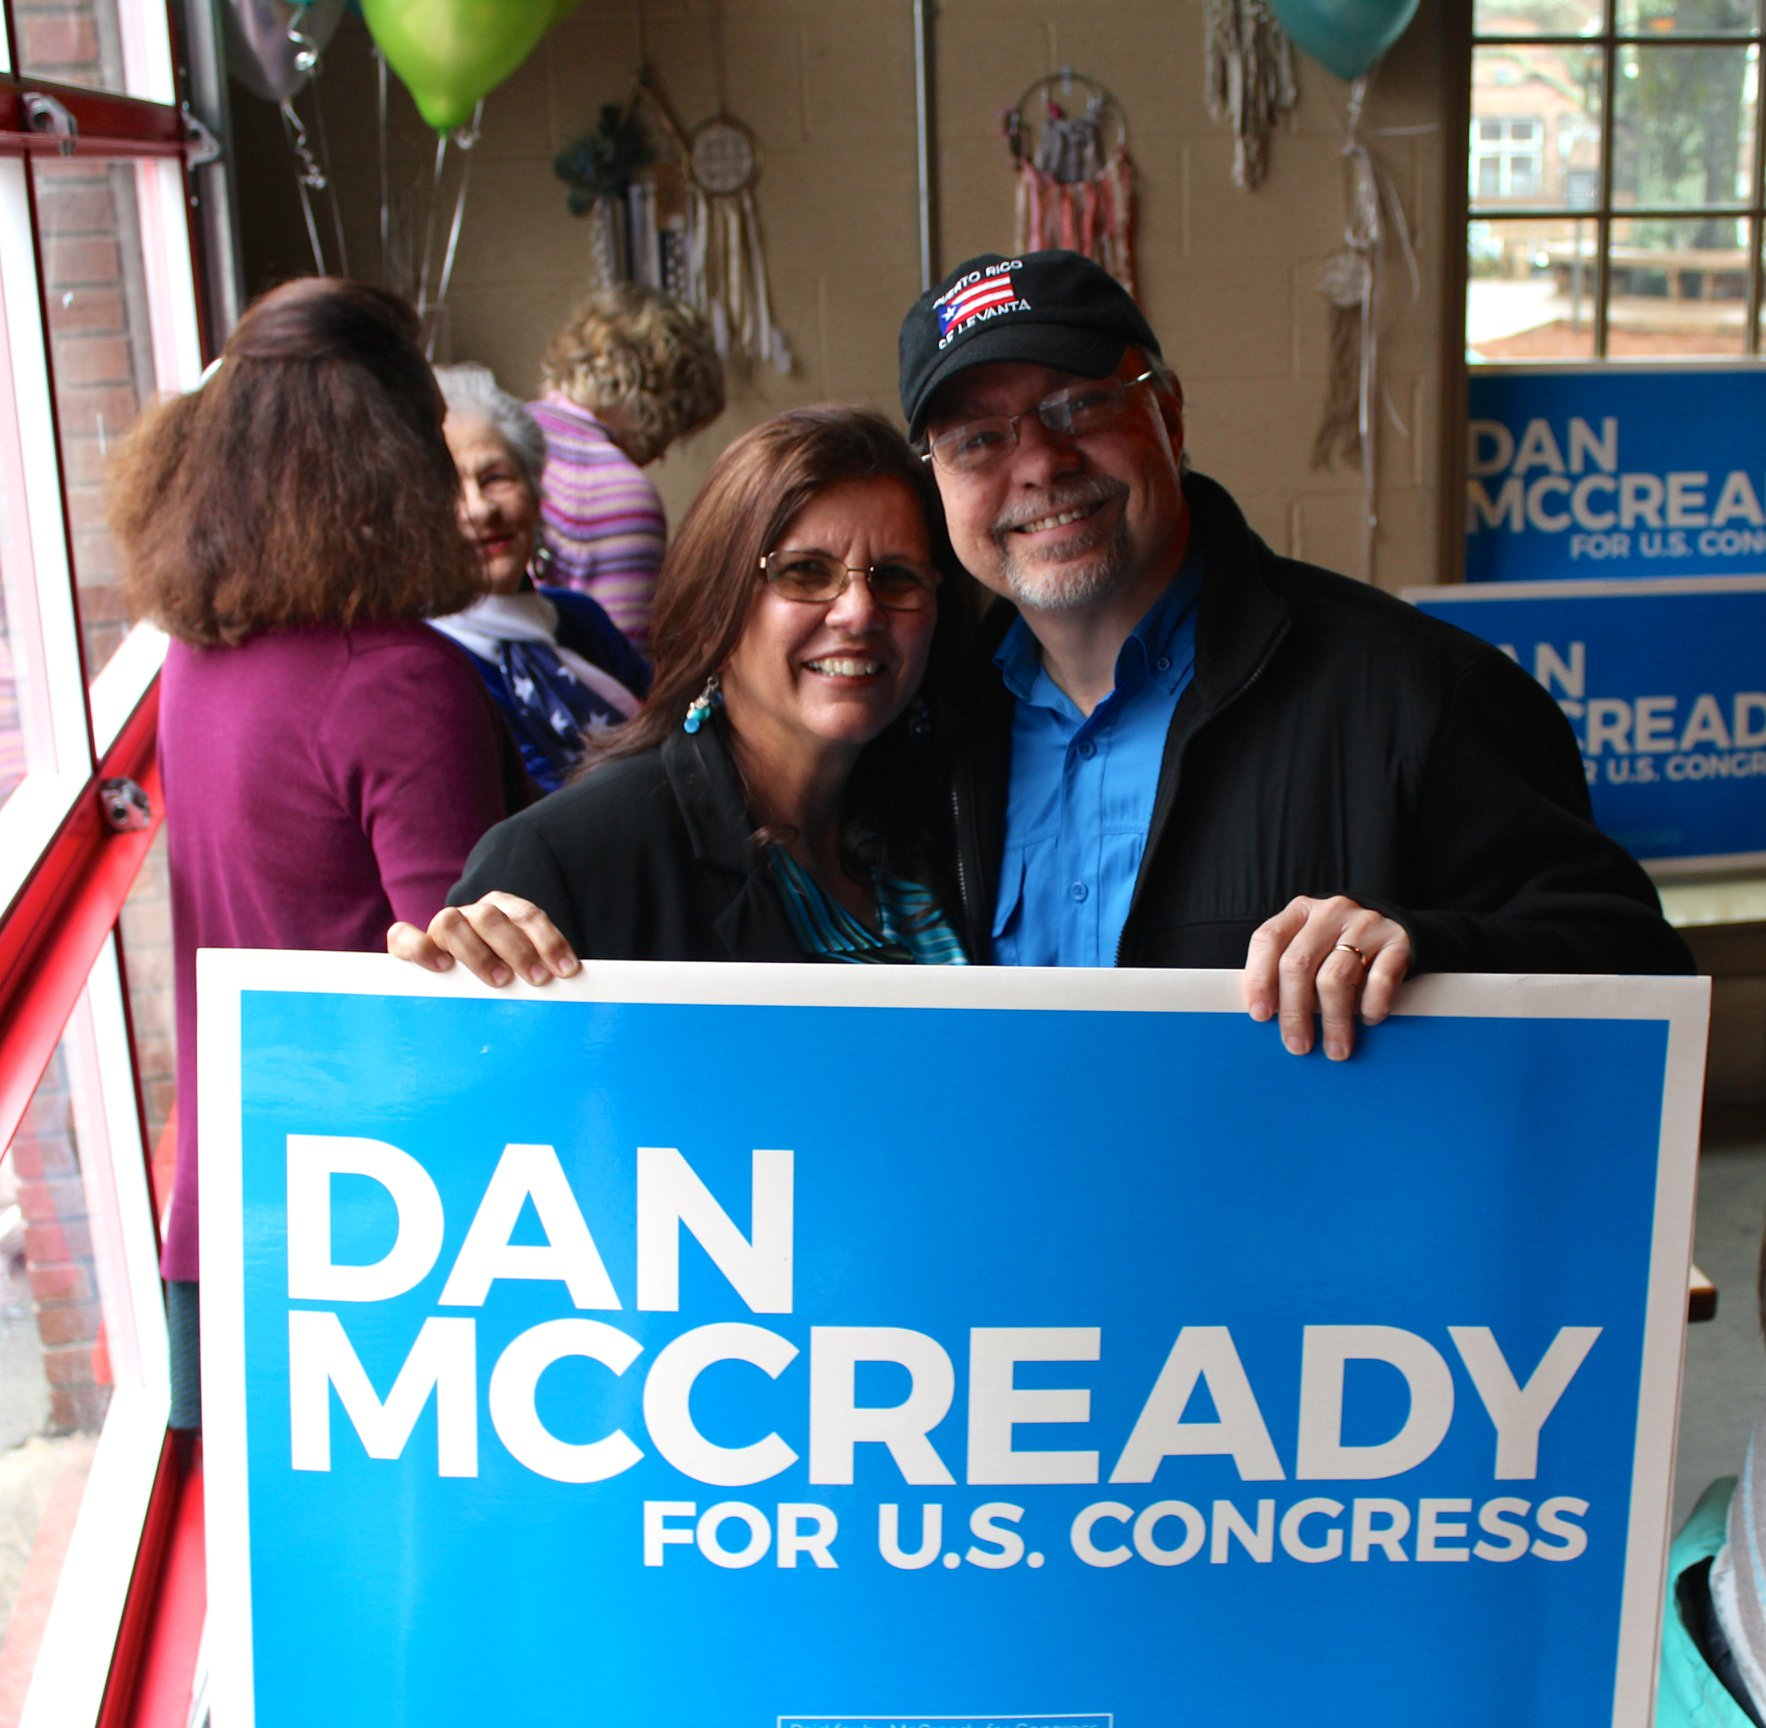 Indivisible District 9 participating in Dan McCready's campaign announcement in Waxhaw, NC.